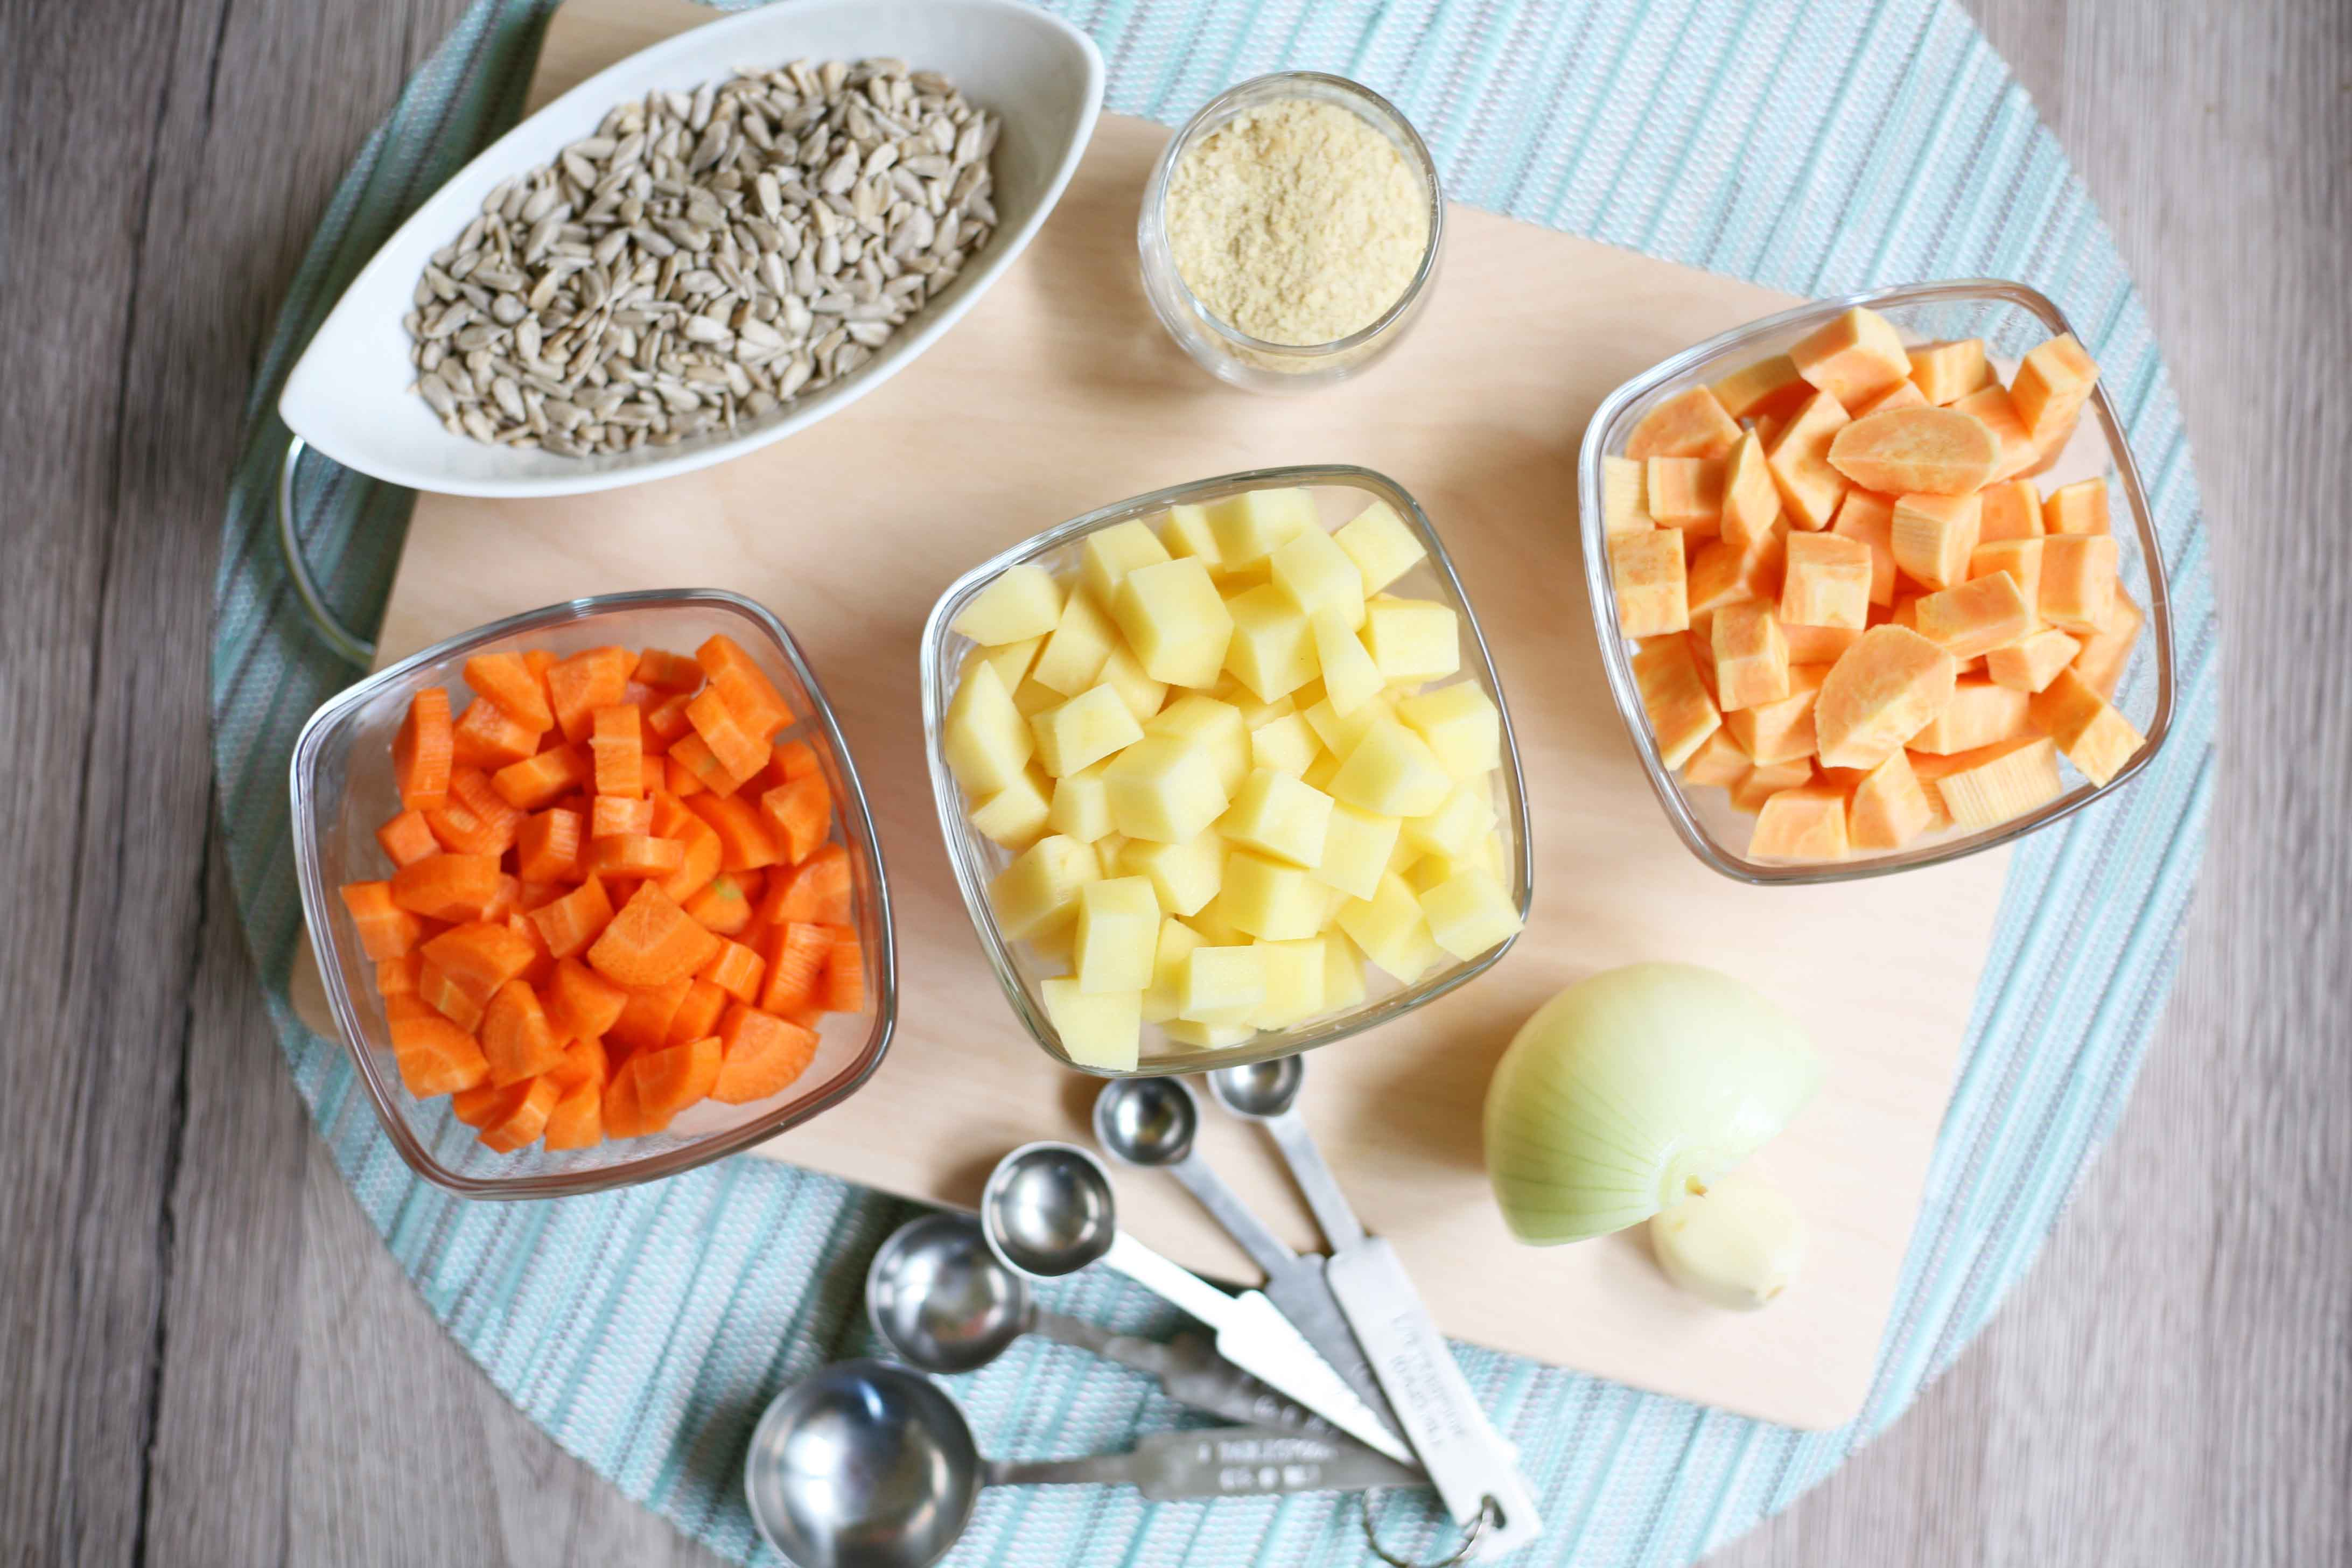 All ingredients measured in small bowls to make Easy Vegan Nut-free Nacho Cheese Sauce: diced carrots, diced sweet potato, diced potato, sunflower seeds, half onion, clove of garlic and nutritional yeast